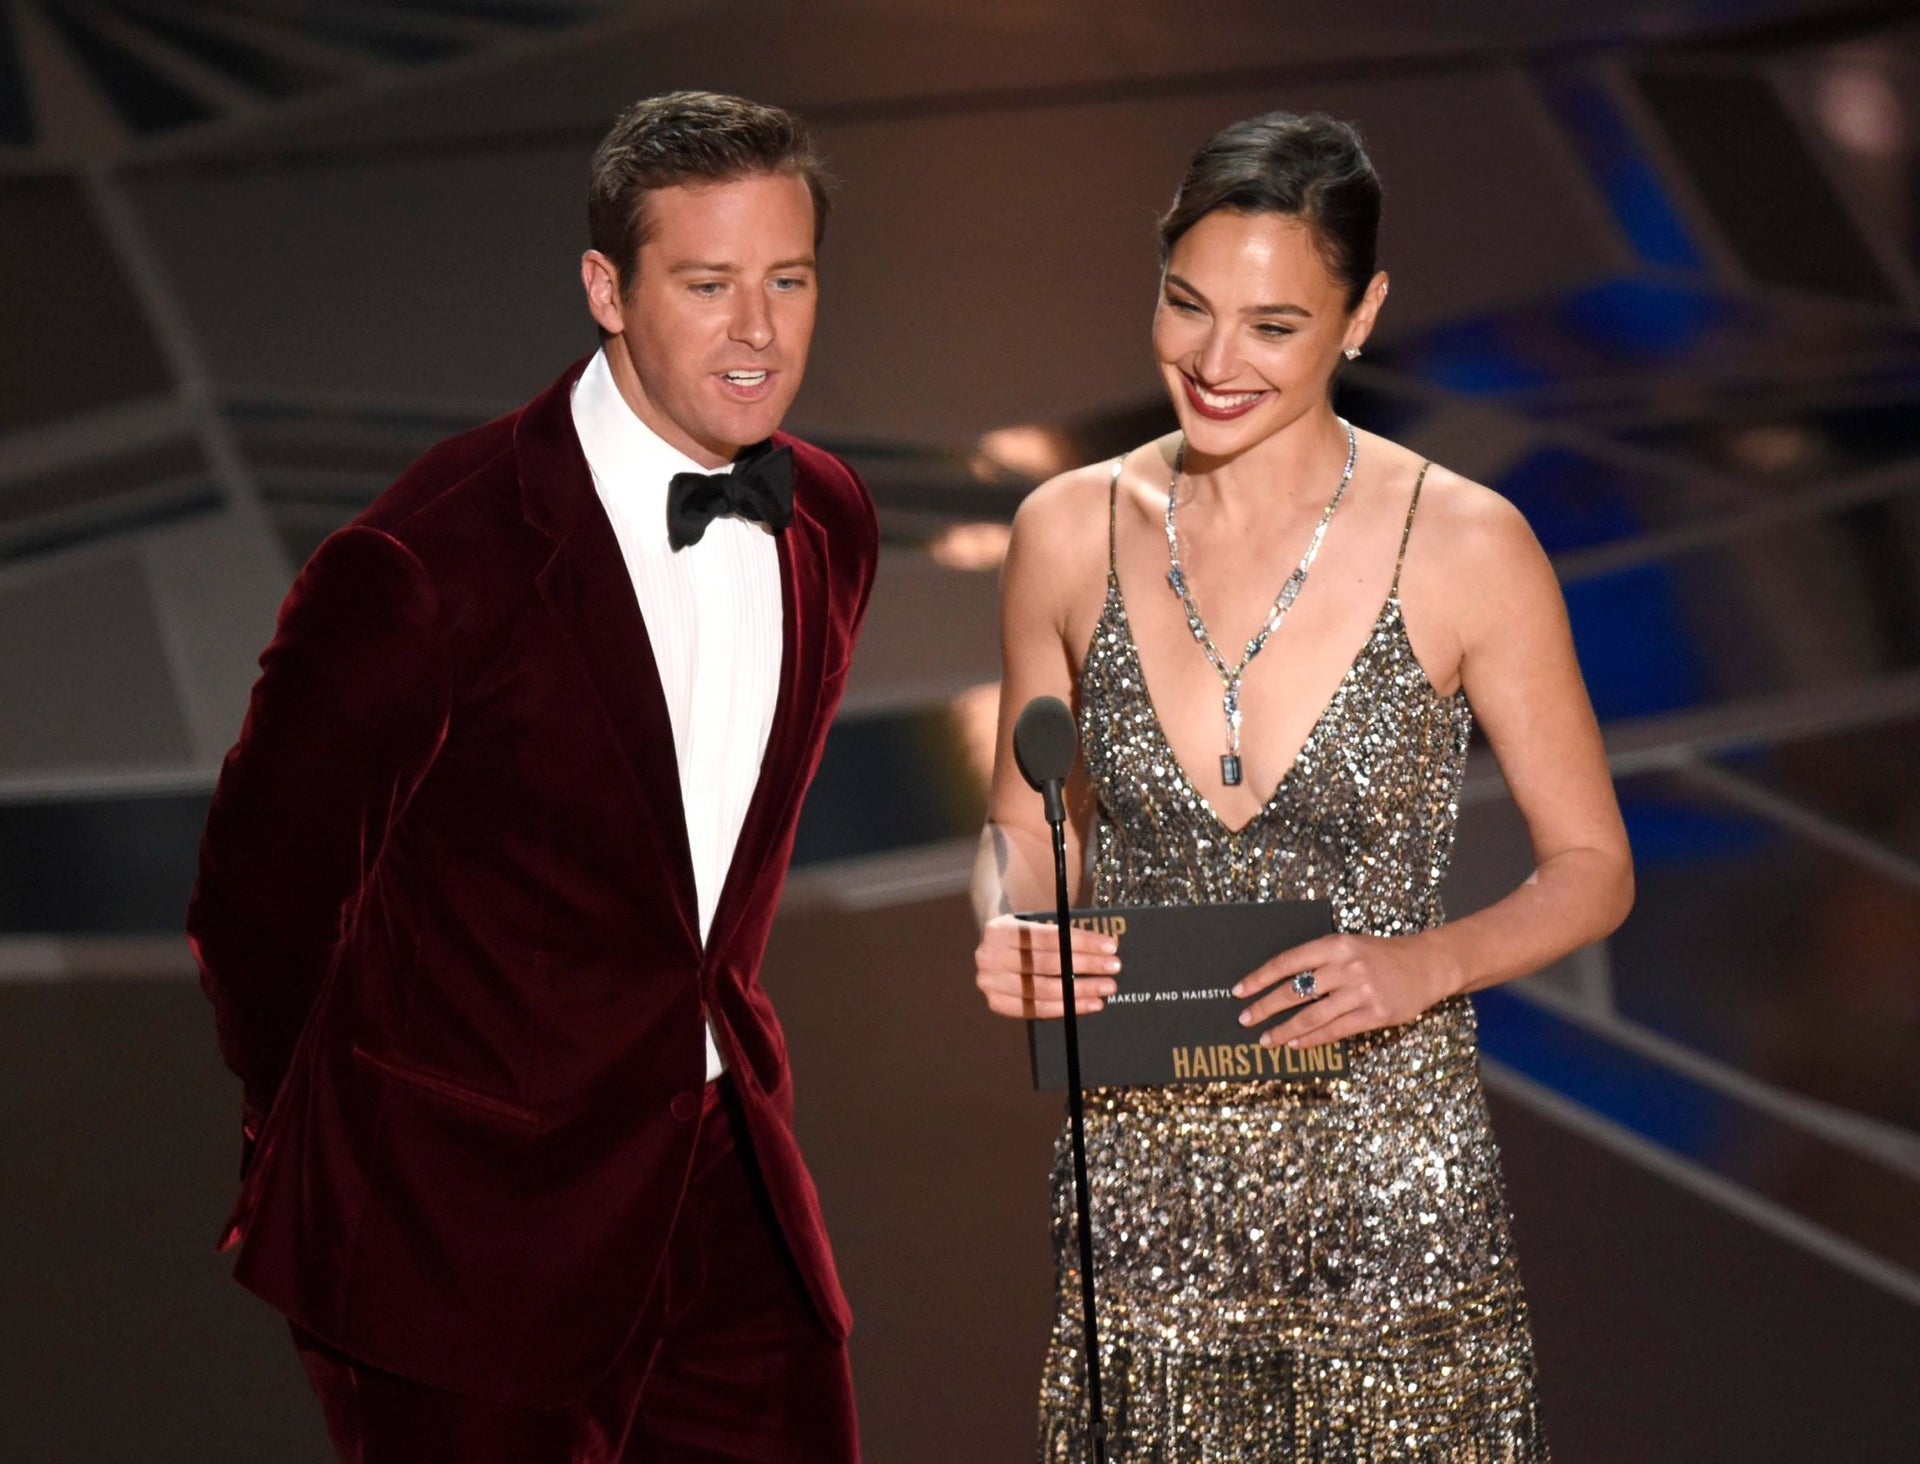 Armie Hammer and Gal Gadot present the award for best makeup and hairstyling at the Oscars, March 4, 2018, at the Dolby Theatre in Los Angeles.